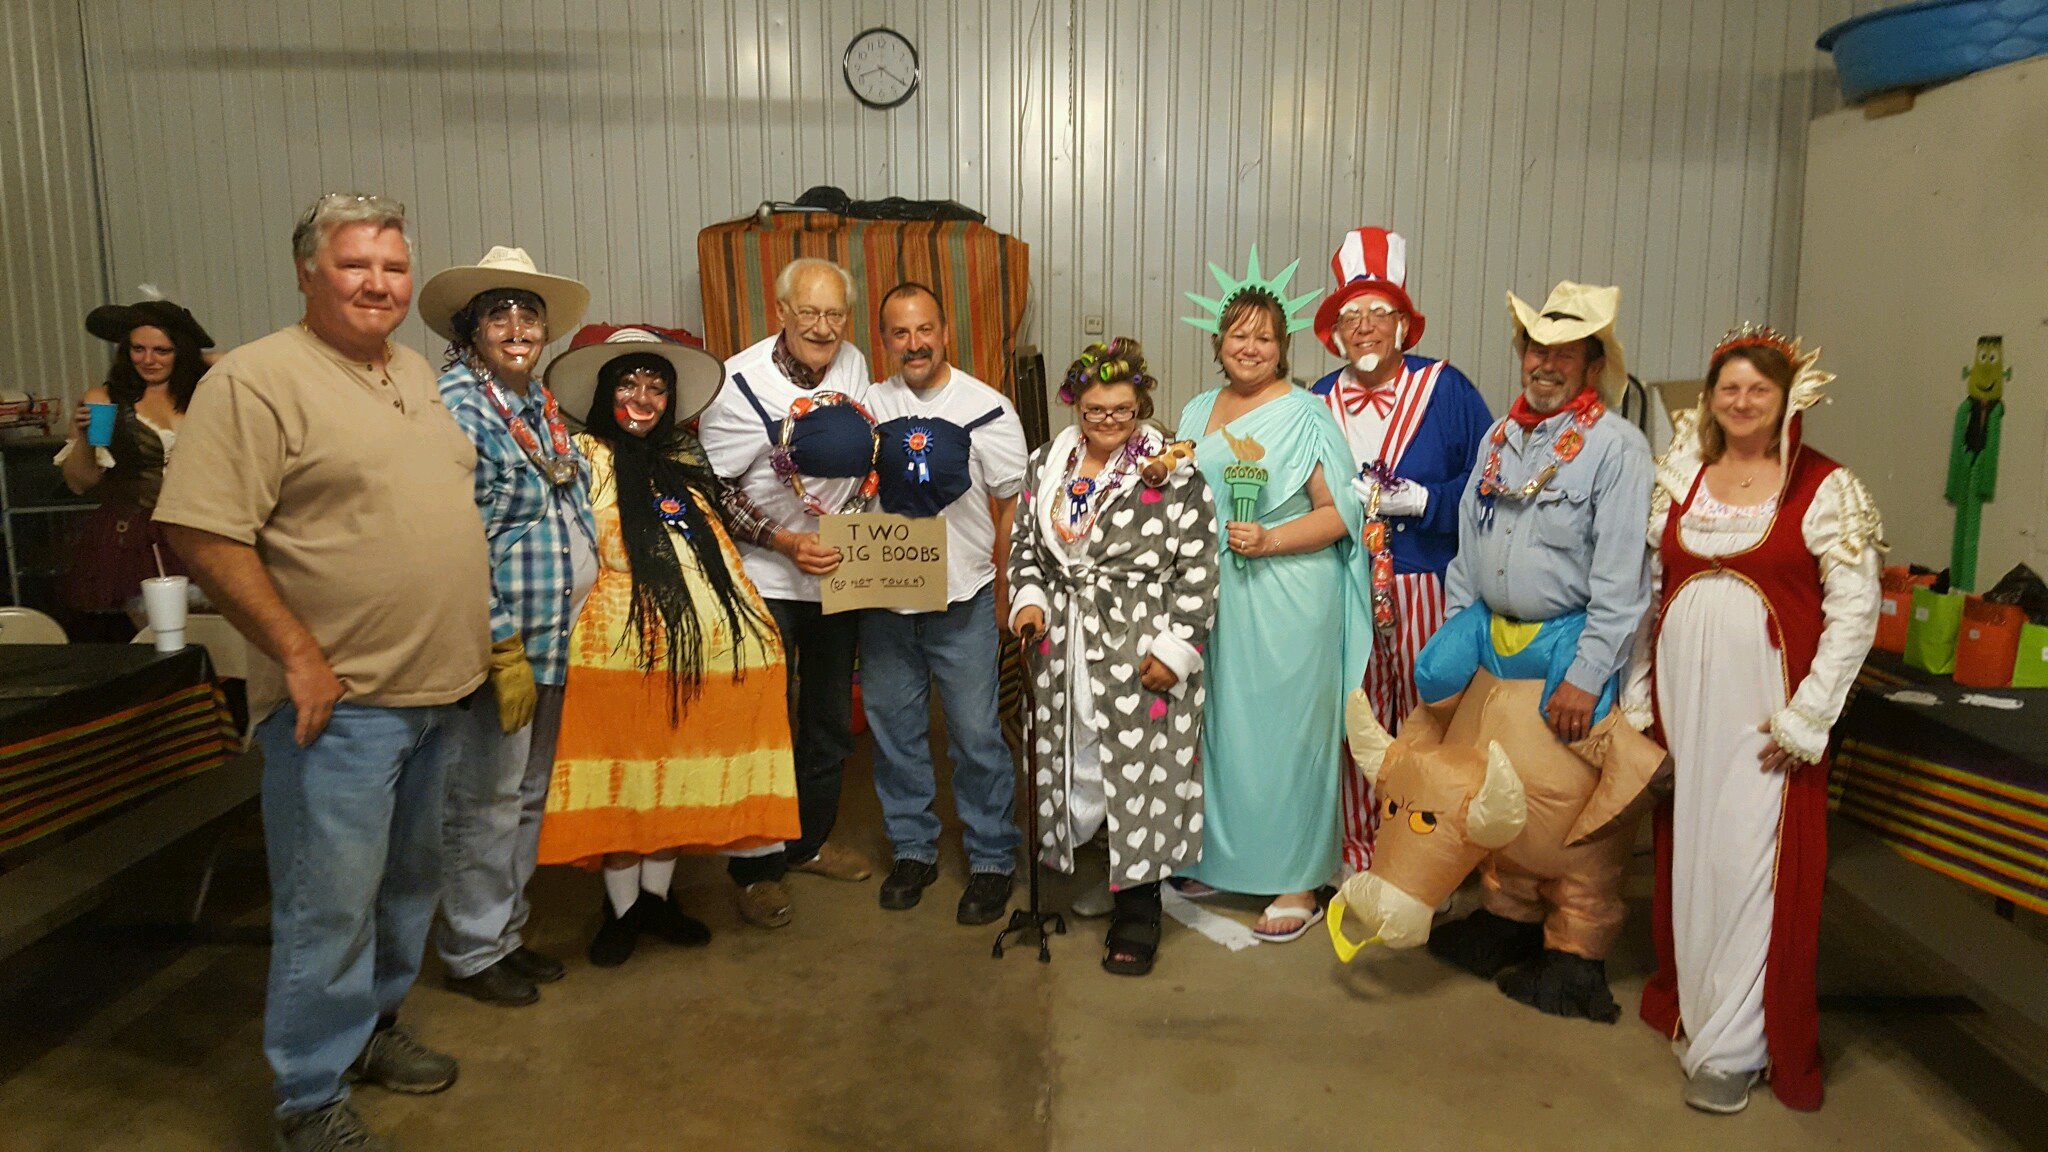 Costume Winners 2016